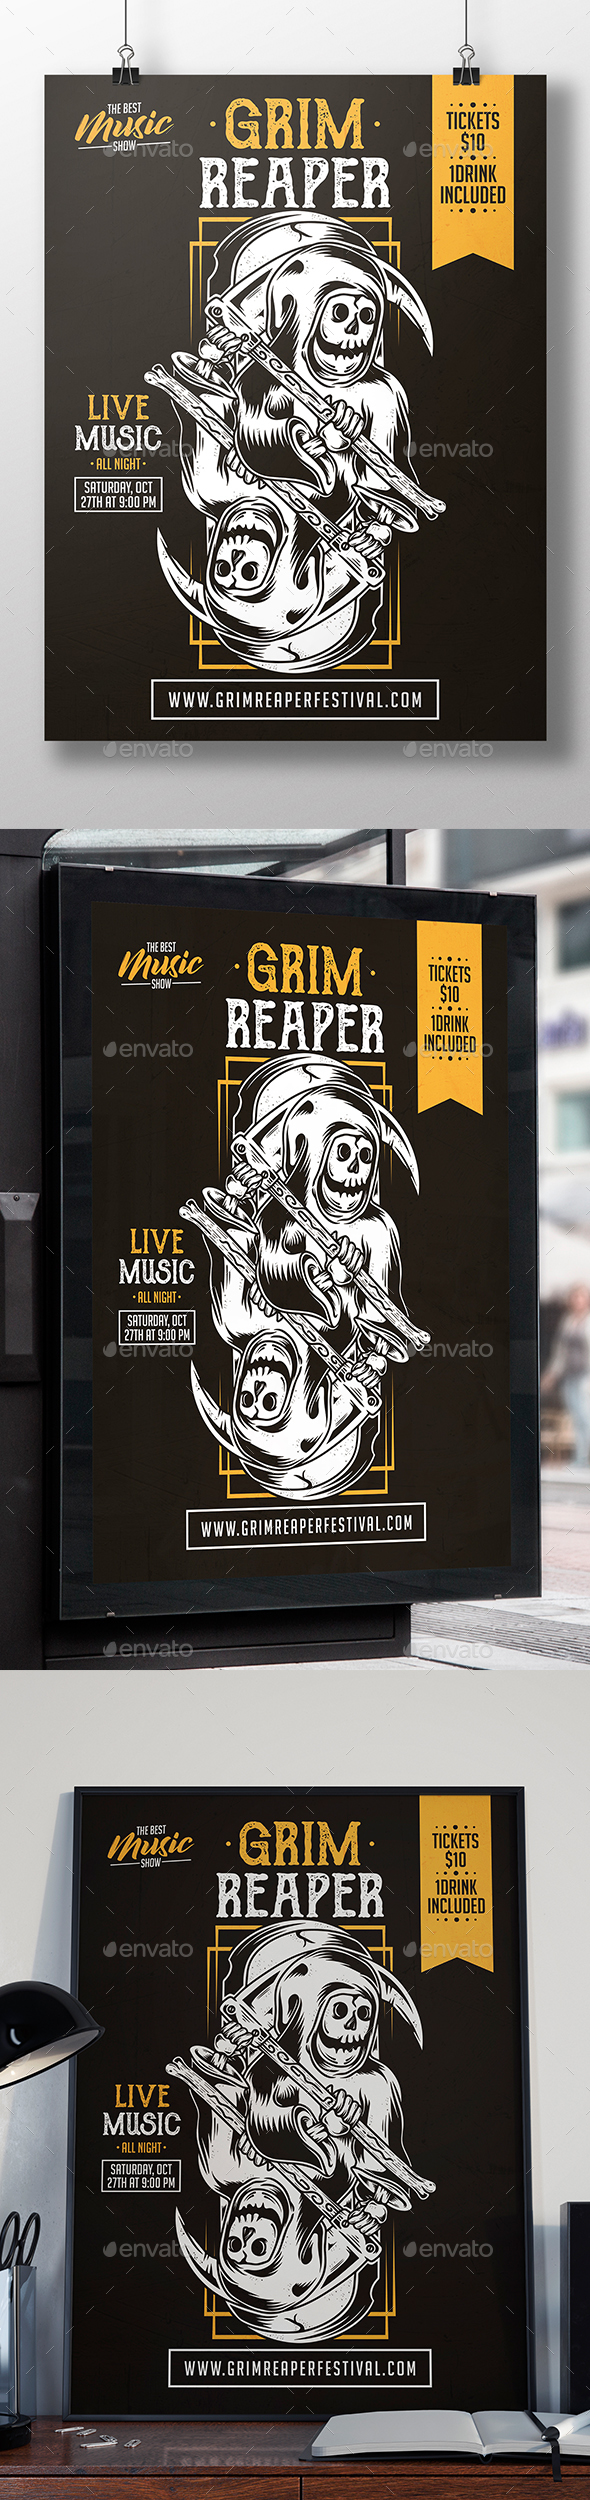 Grim Reaper Flyer Template - Concerts Events